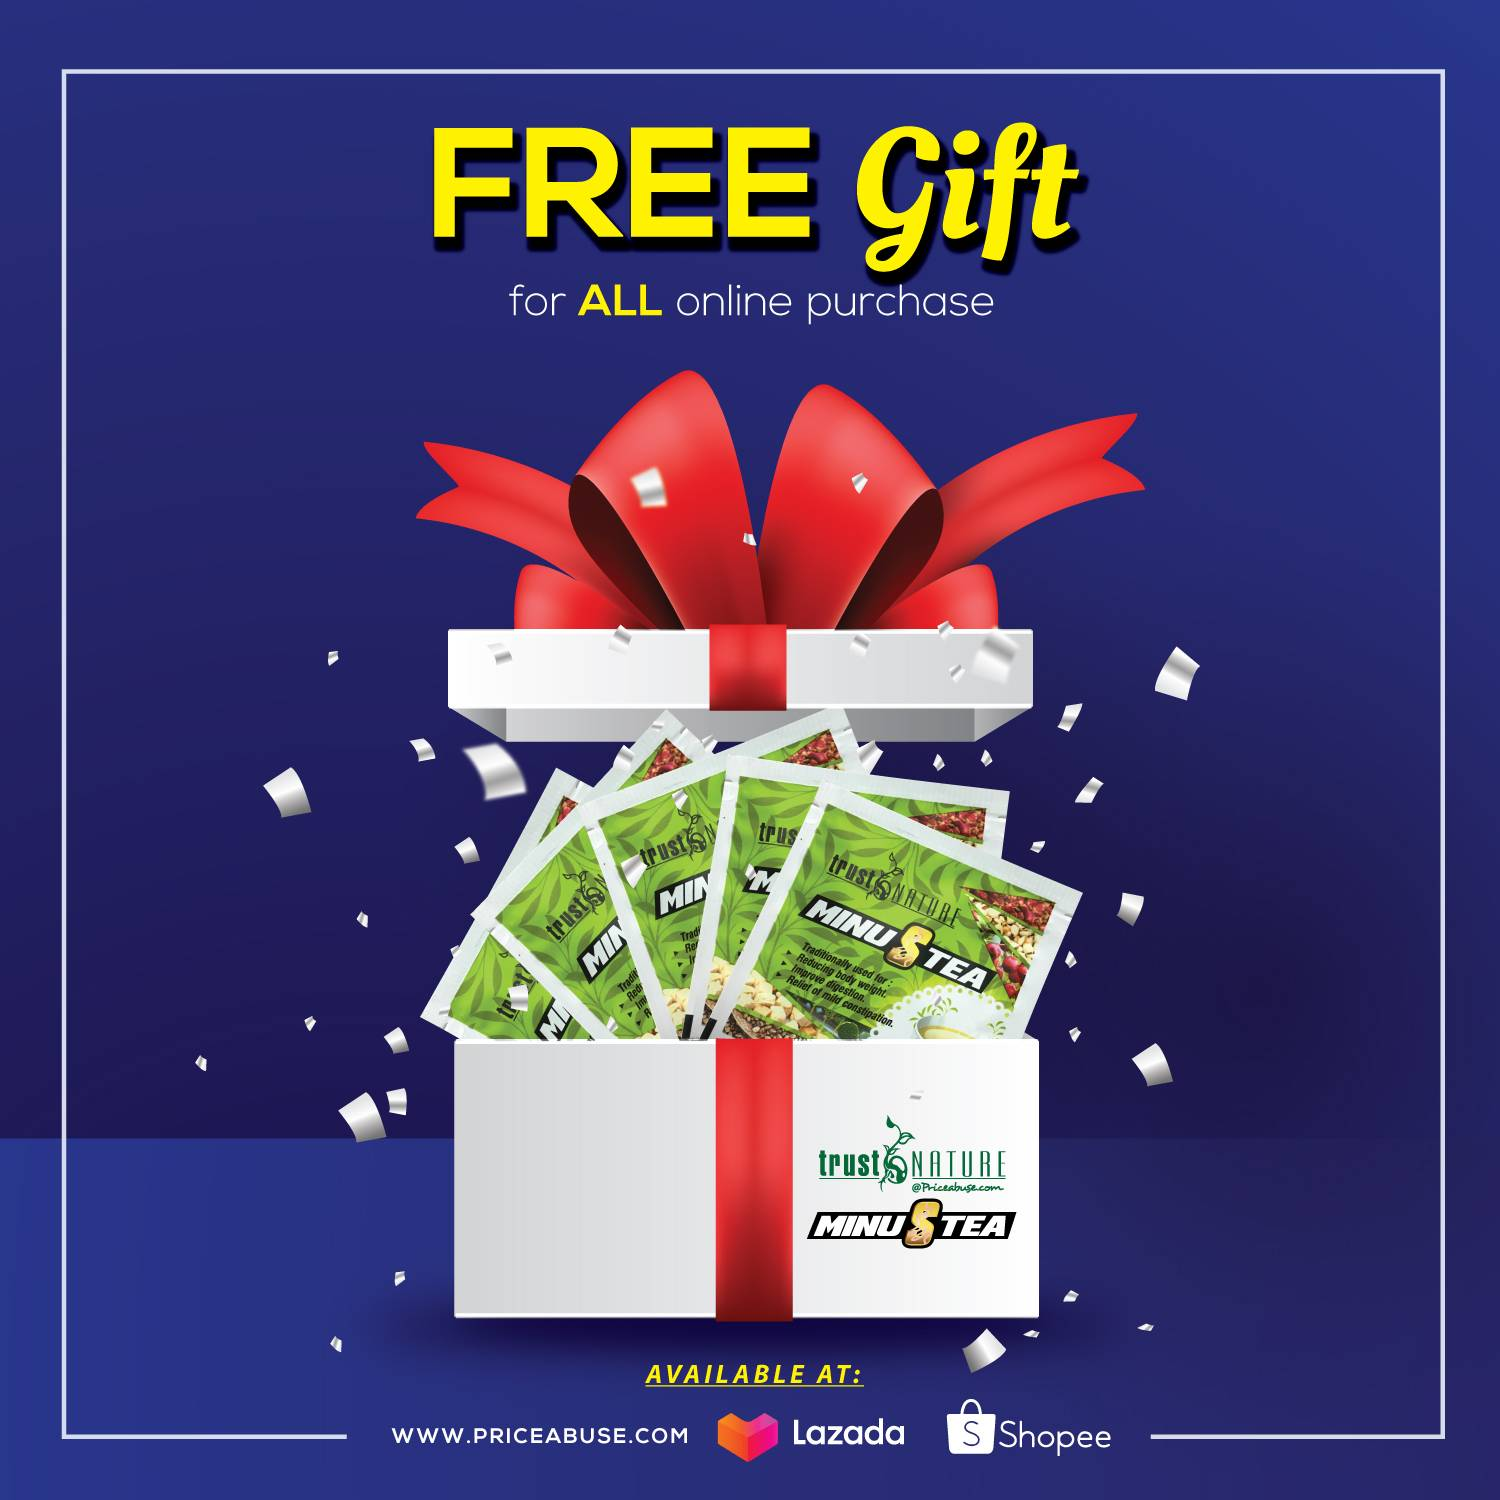 Free gift online purchase